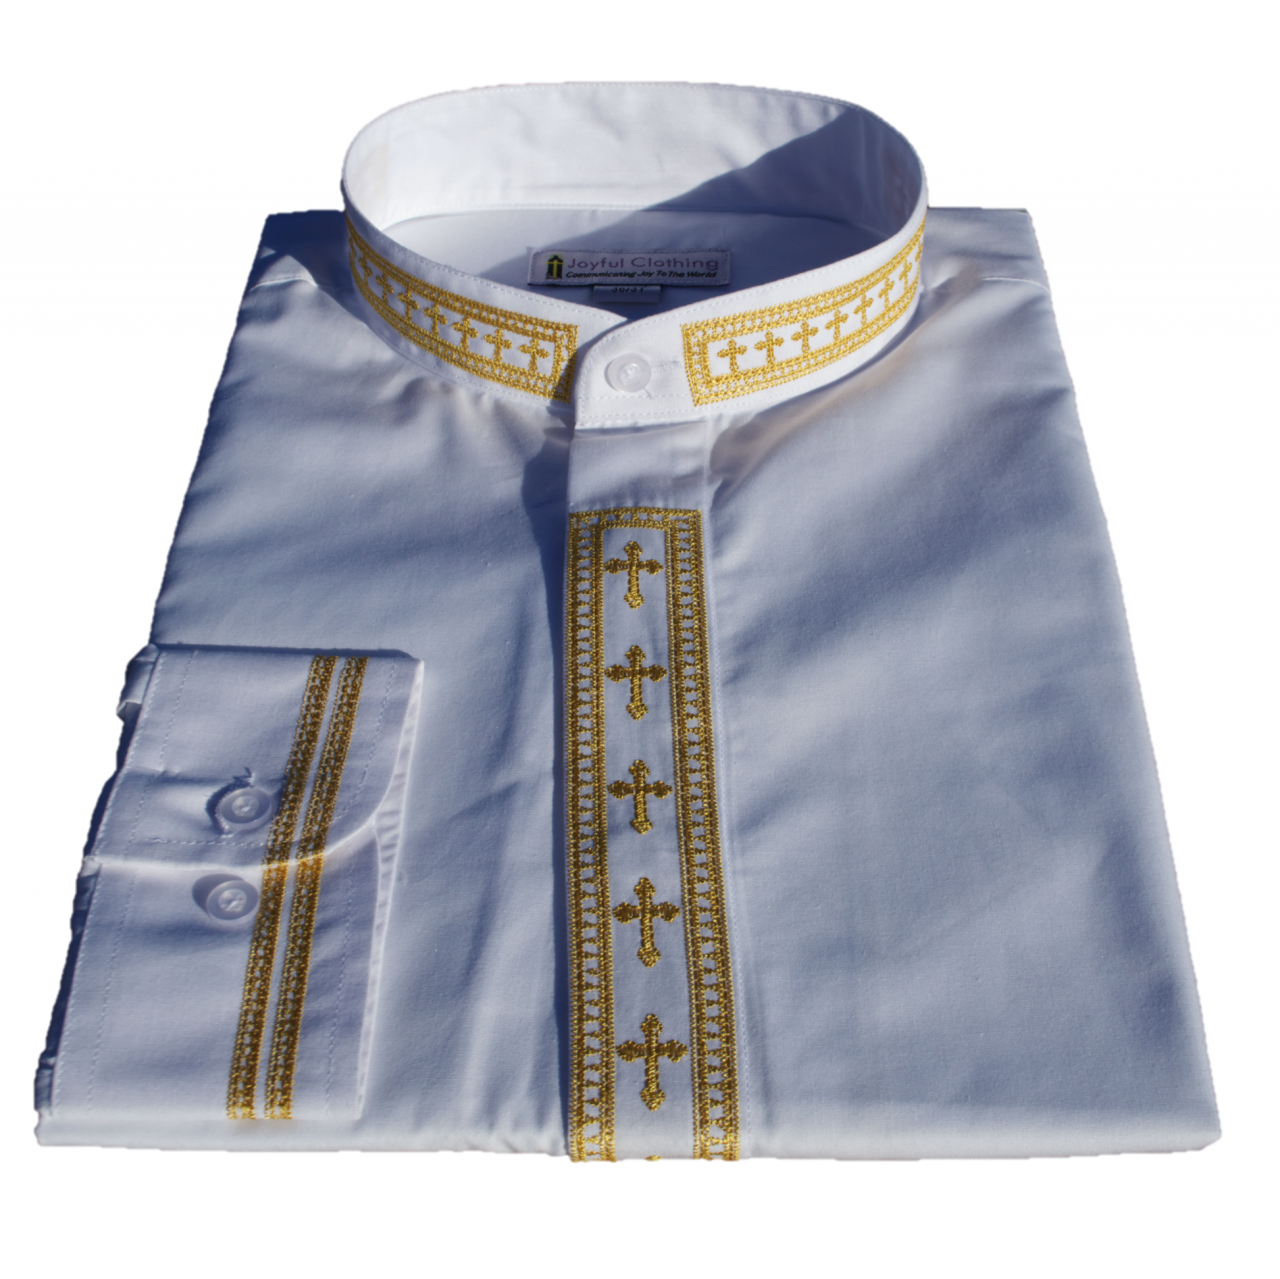 304. Men's Long-Sleeve Clergy Shirt With Fine Embroidery - White/Gold